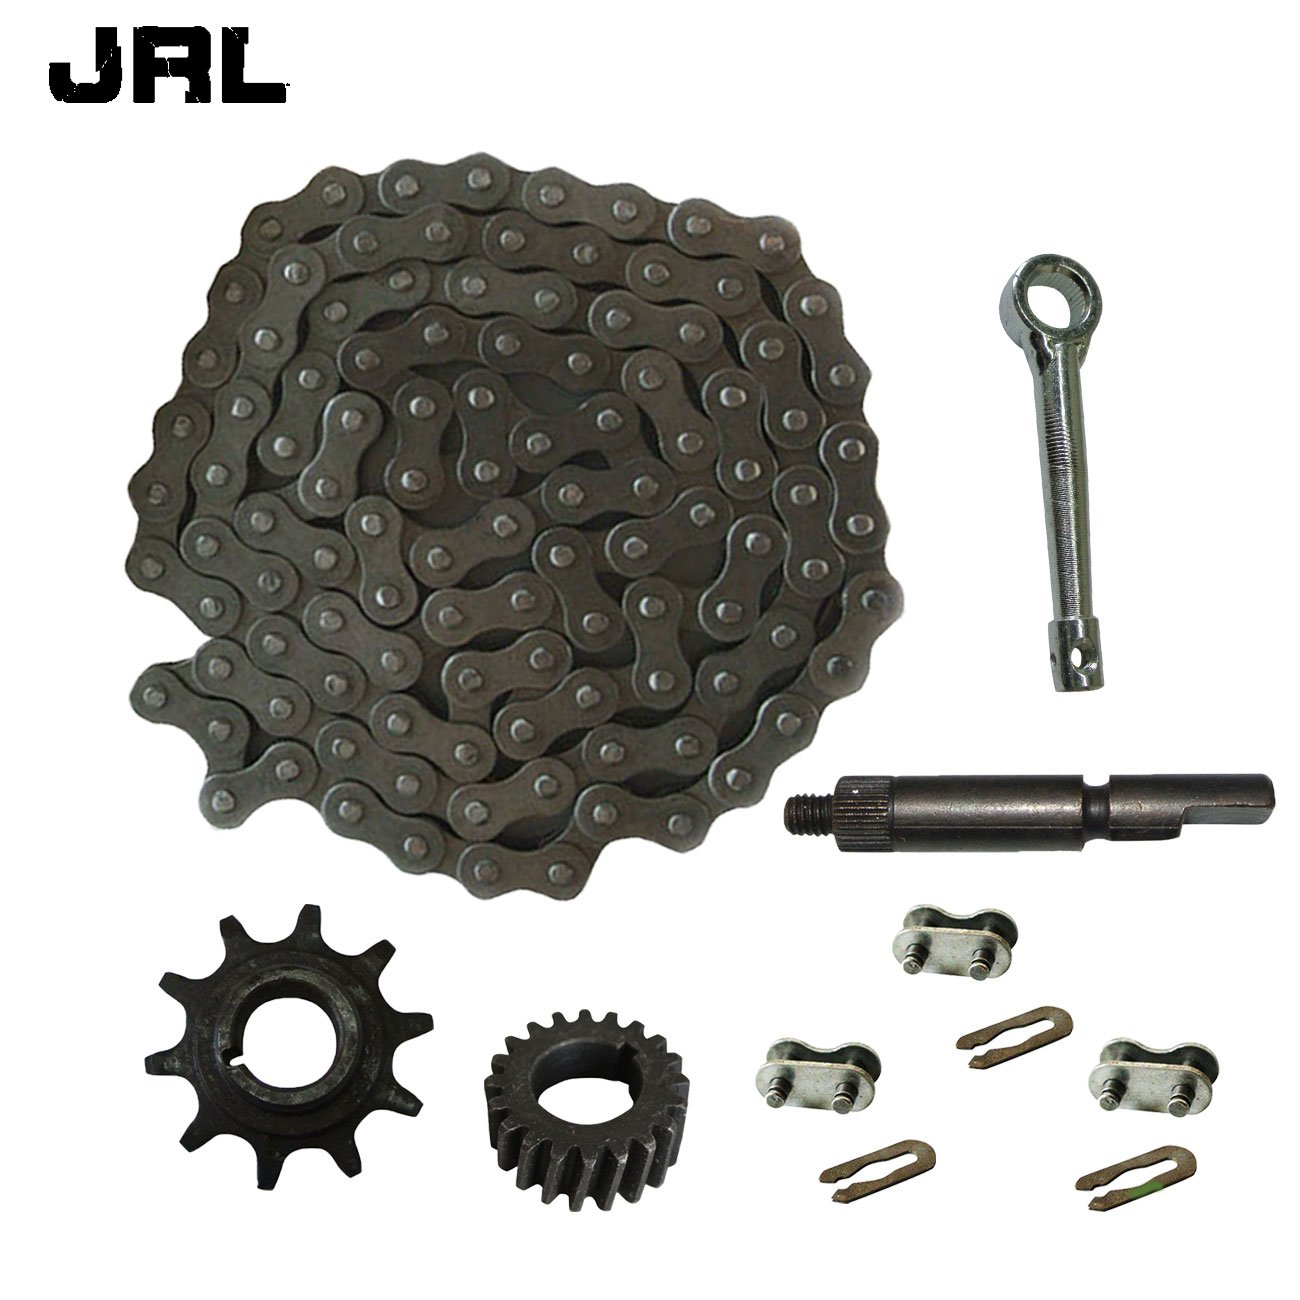 JRL 415 Chain&Drive Sprocket&3xChain Master Link For 49cc 66cc 80cc Motorized Bike King Di